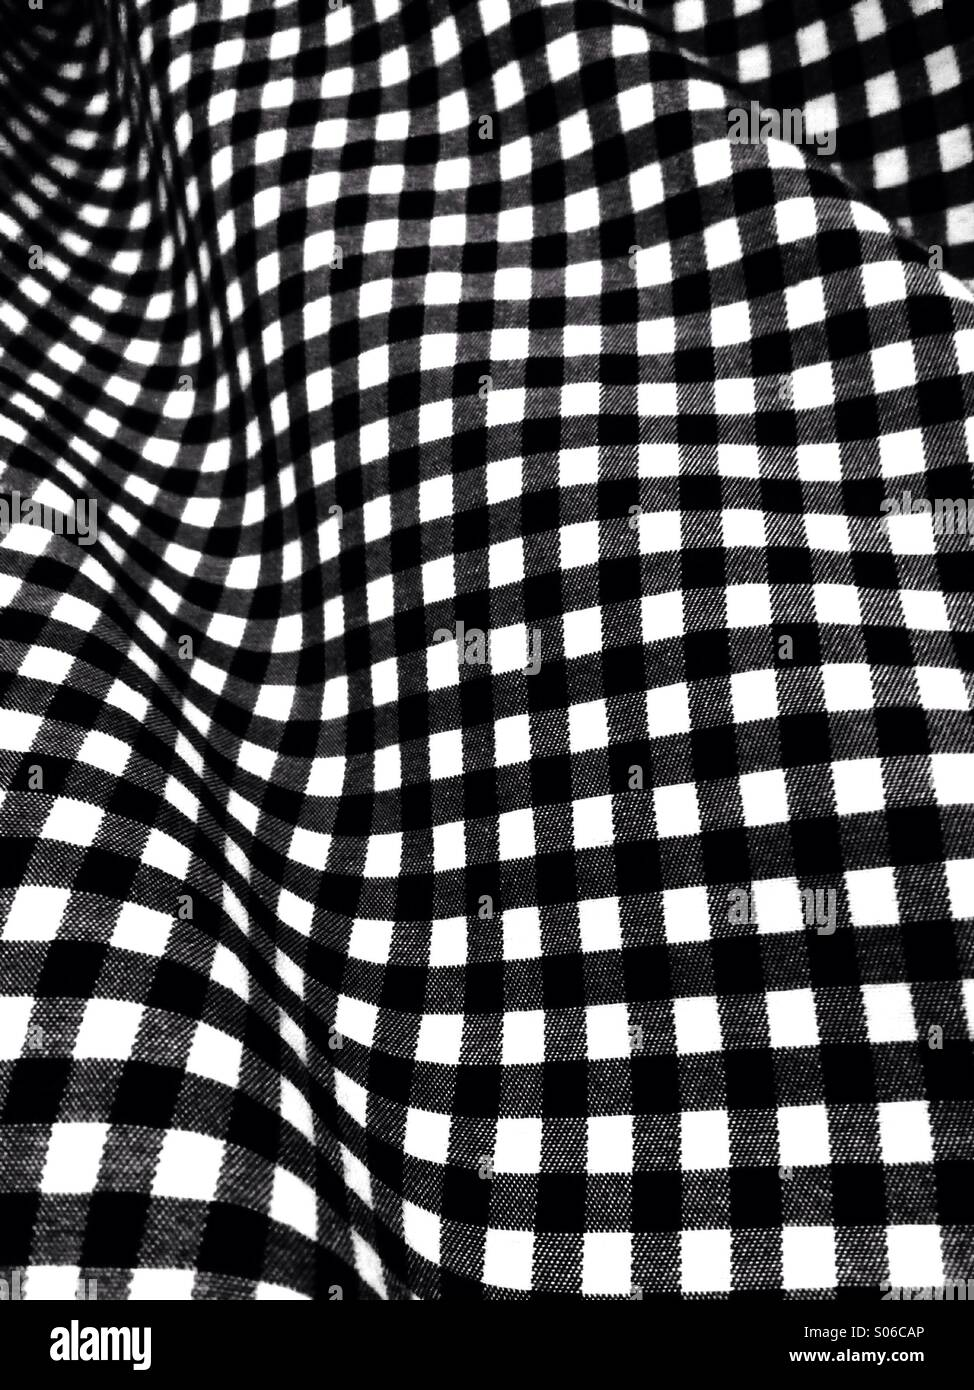 Black and white grid, warped - Stock Image